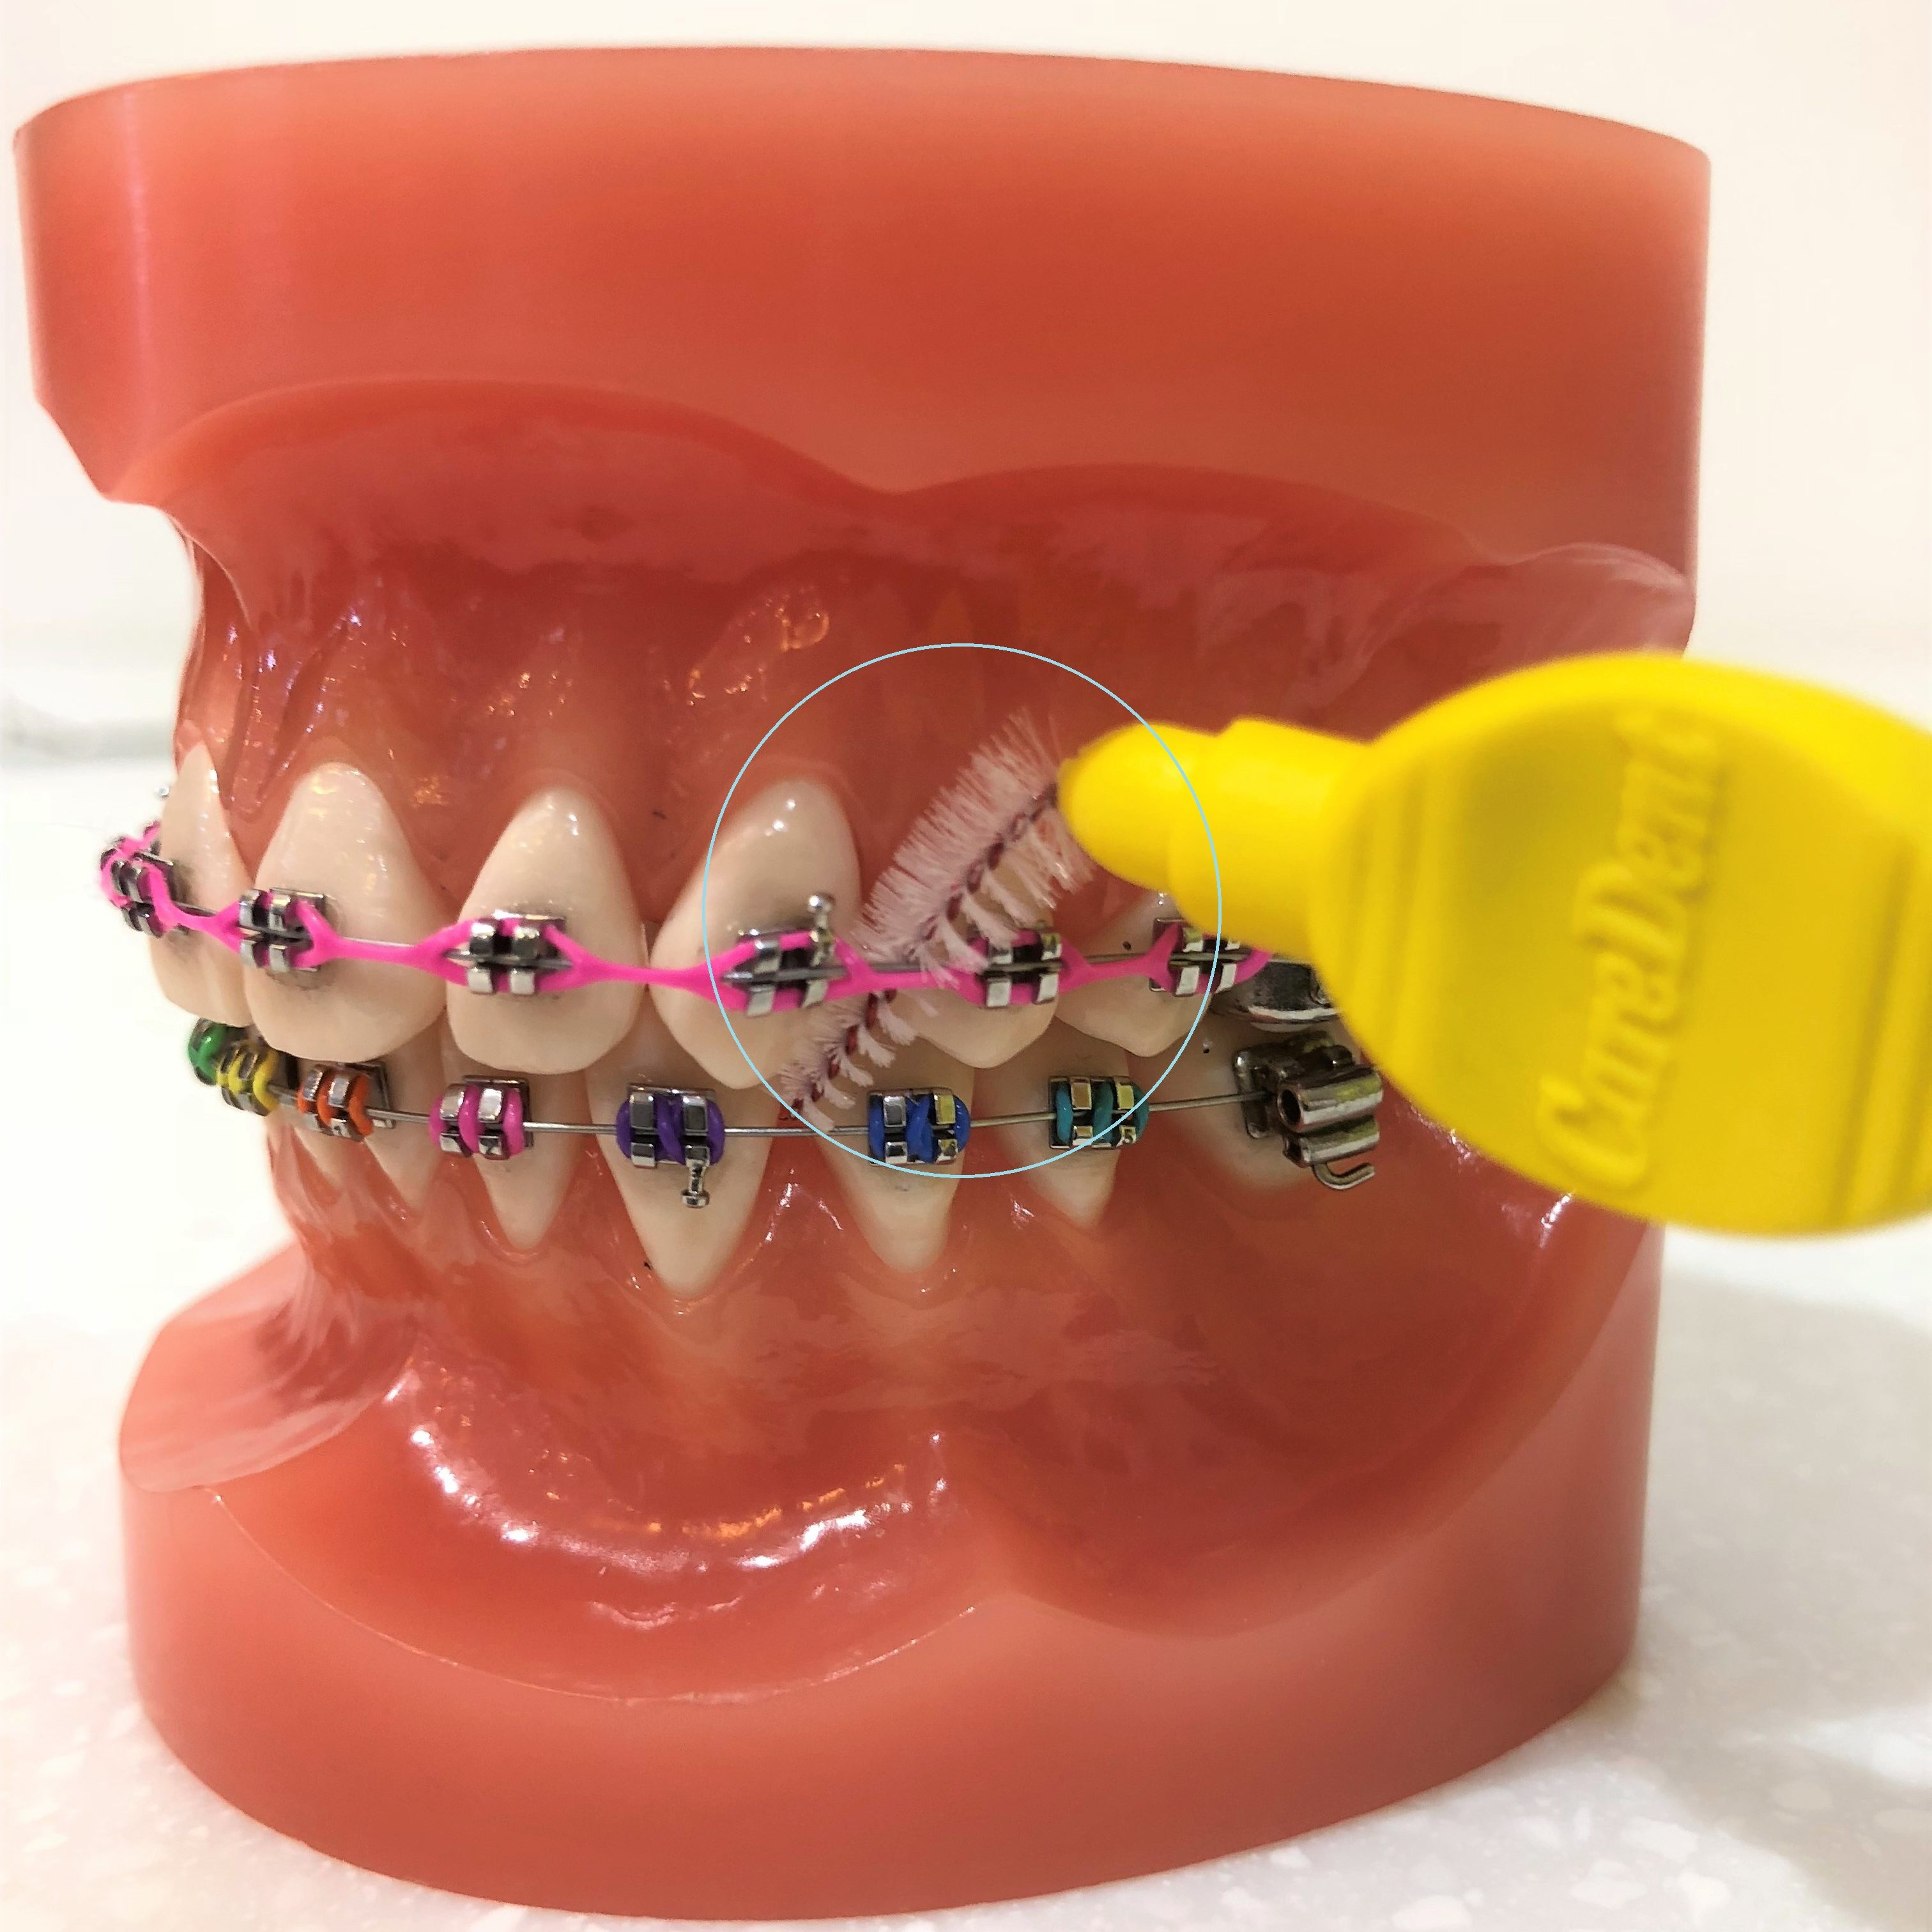 Small brushes to clean between teeth. Mark Cordato, specialist orthodontist Bathurst, Blayney, Oberon, Hill End, Mudgee, Sofala, Ilford, Portland, Rylstone, Kandos, Tarana.